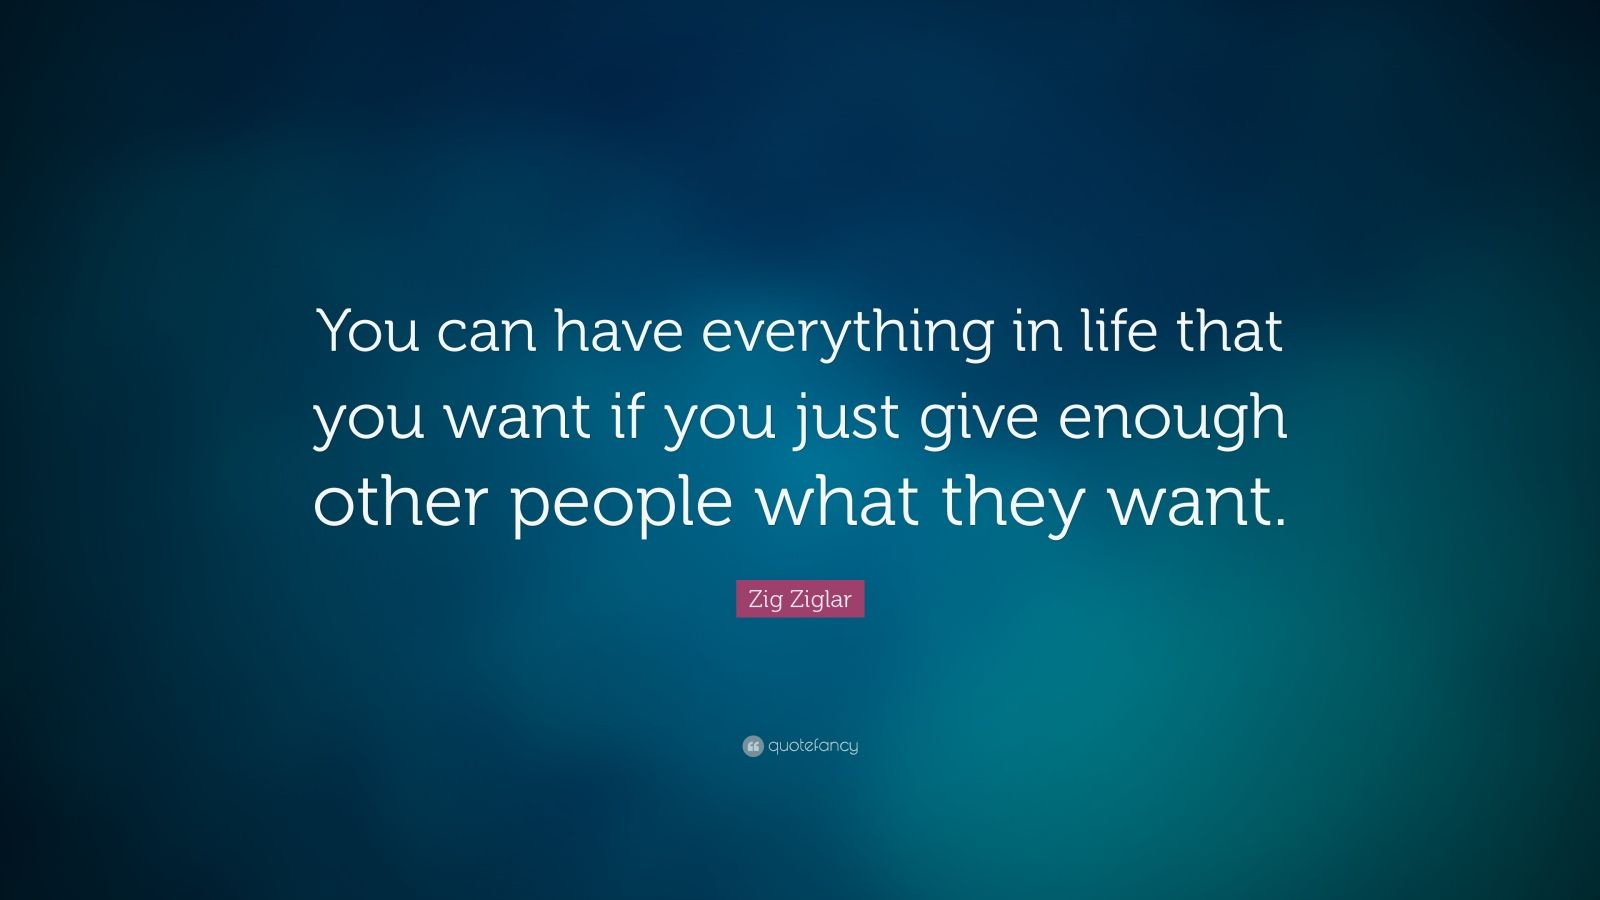 """Zig Ziglar Quote: """"You can have everything in life that you want if you just give enough other people what they want."""""""